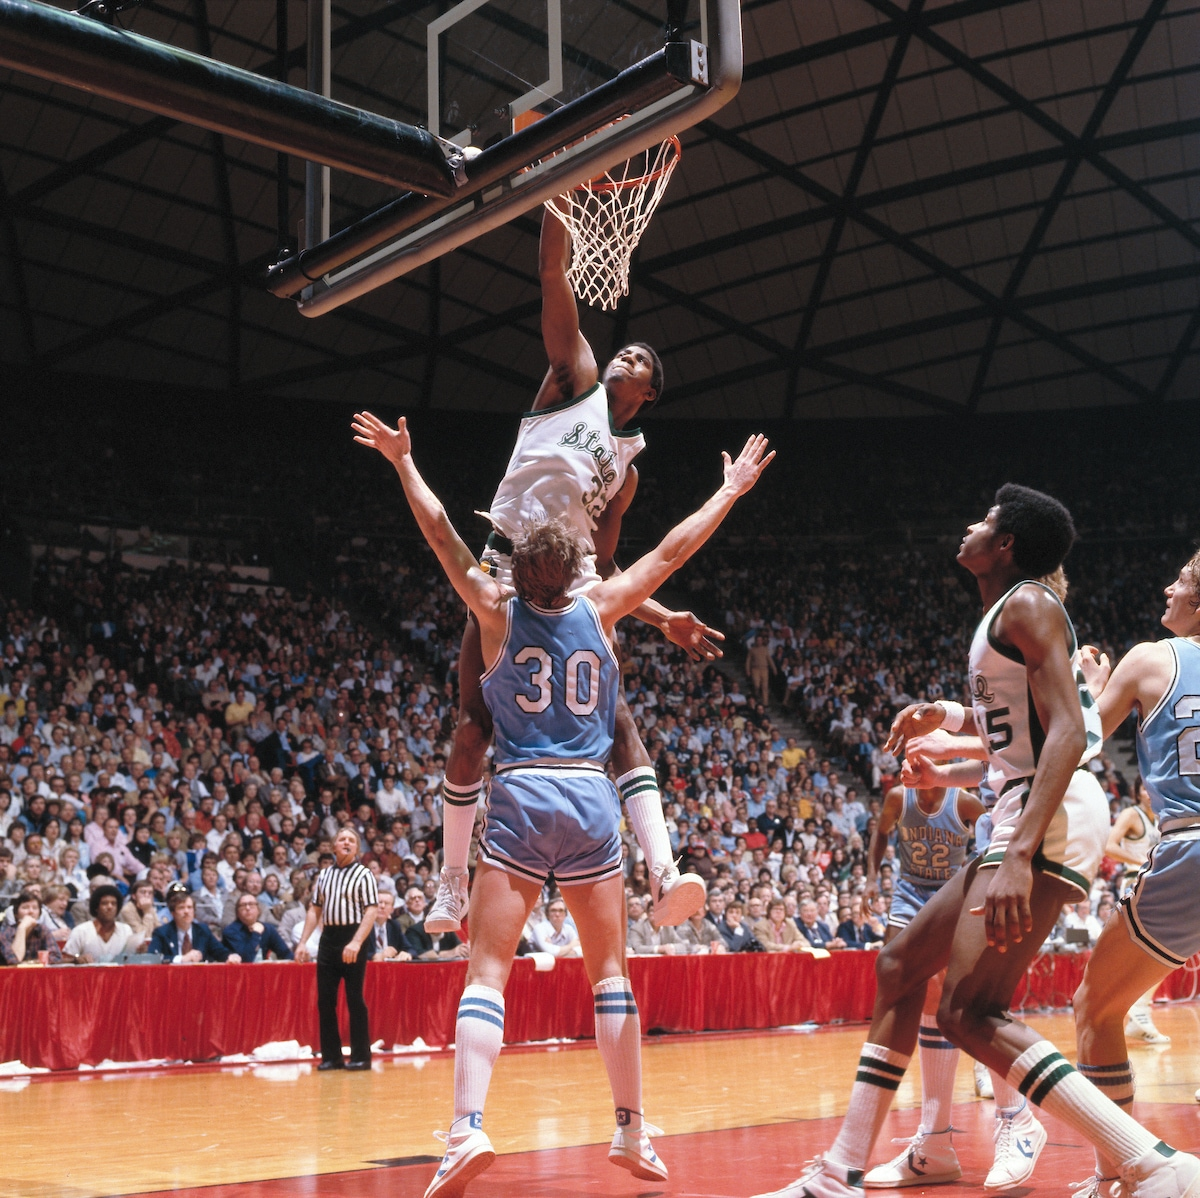 1979 : Magic Johnson Leads Michigan State Spartans to First National Basketball Title